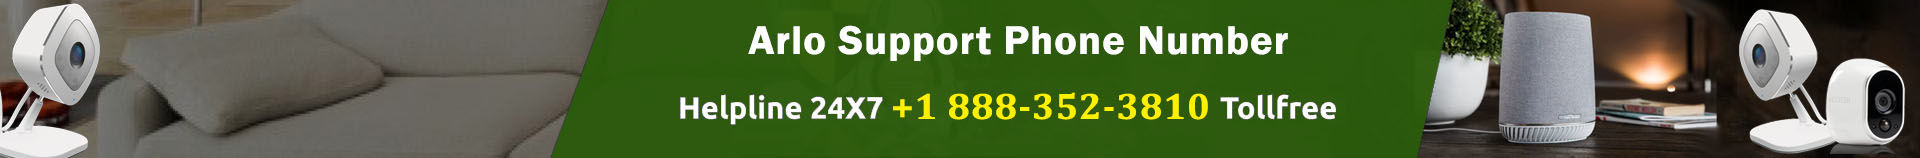 Arlo Phone Number +1-888(352)3810 Arlo Support Phone Number